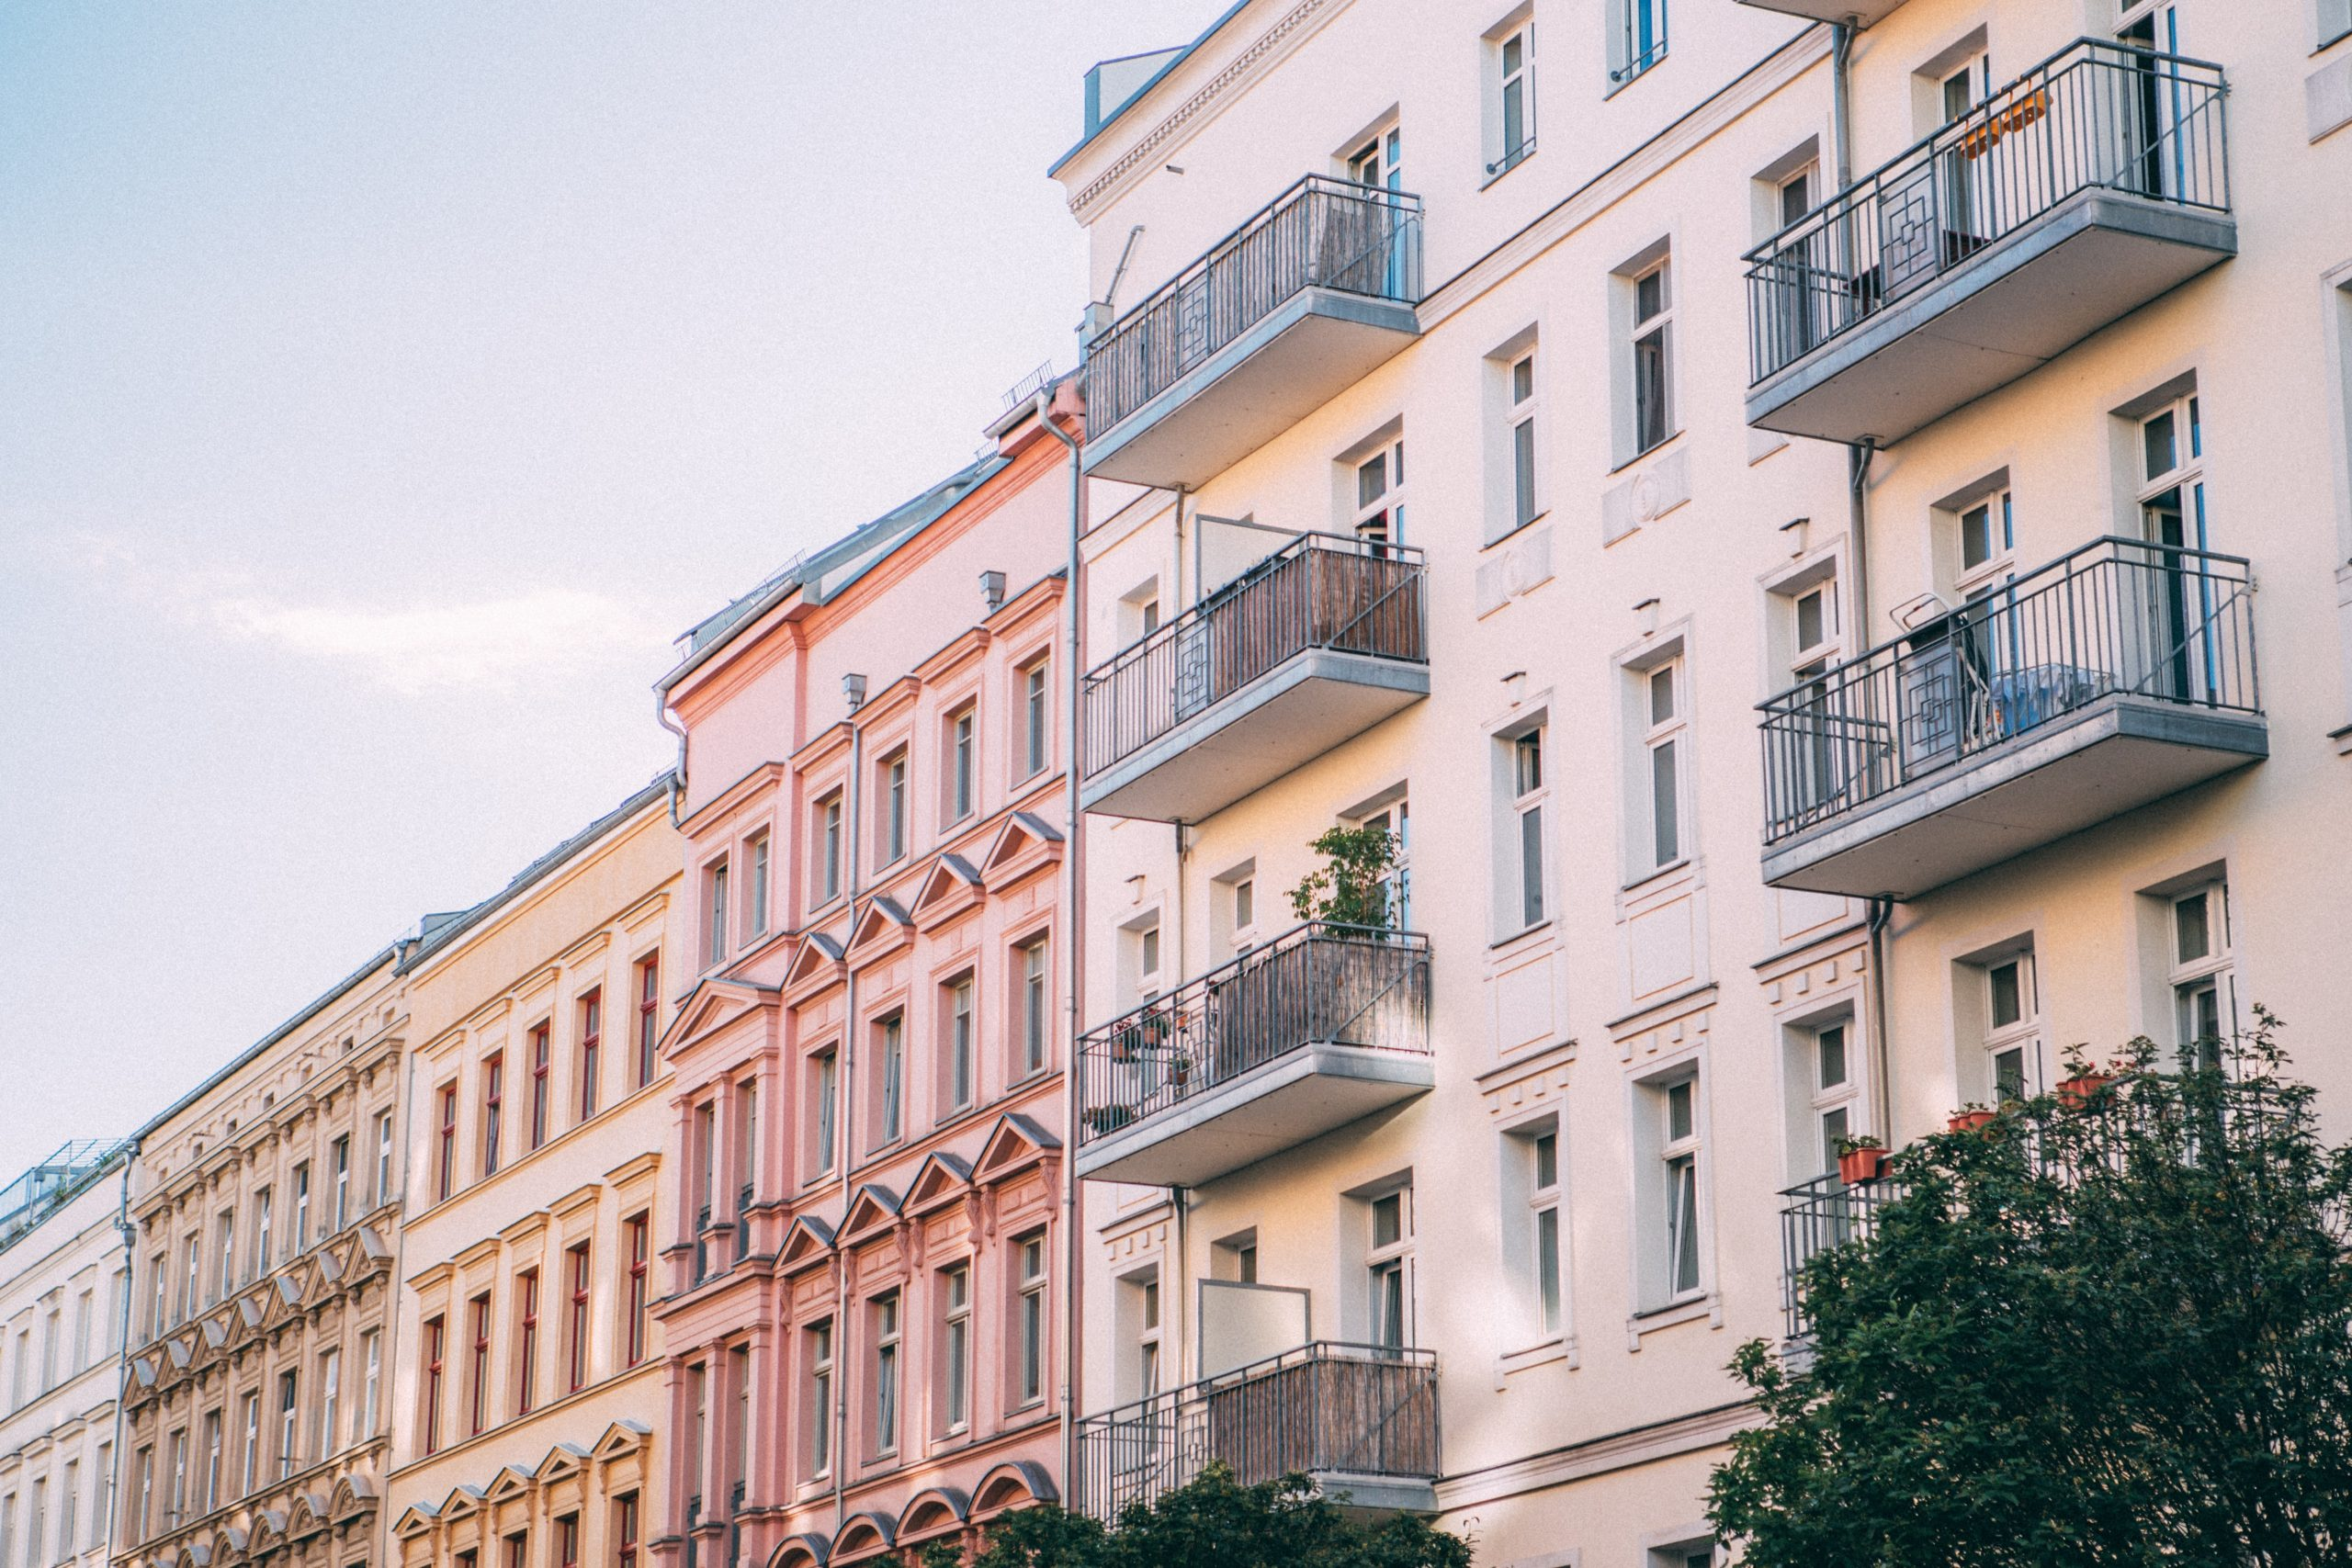 buildings with balconies on a sunny day; street view in Berlin